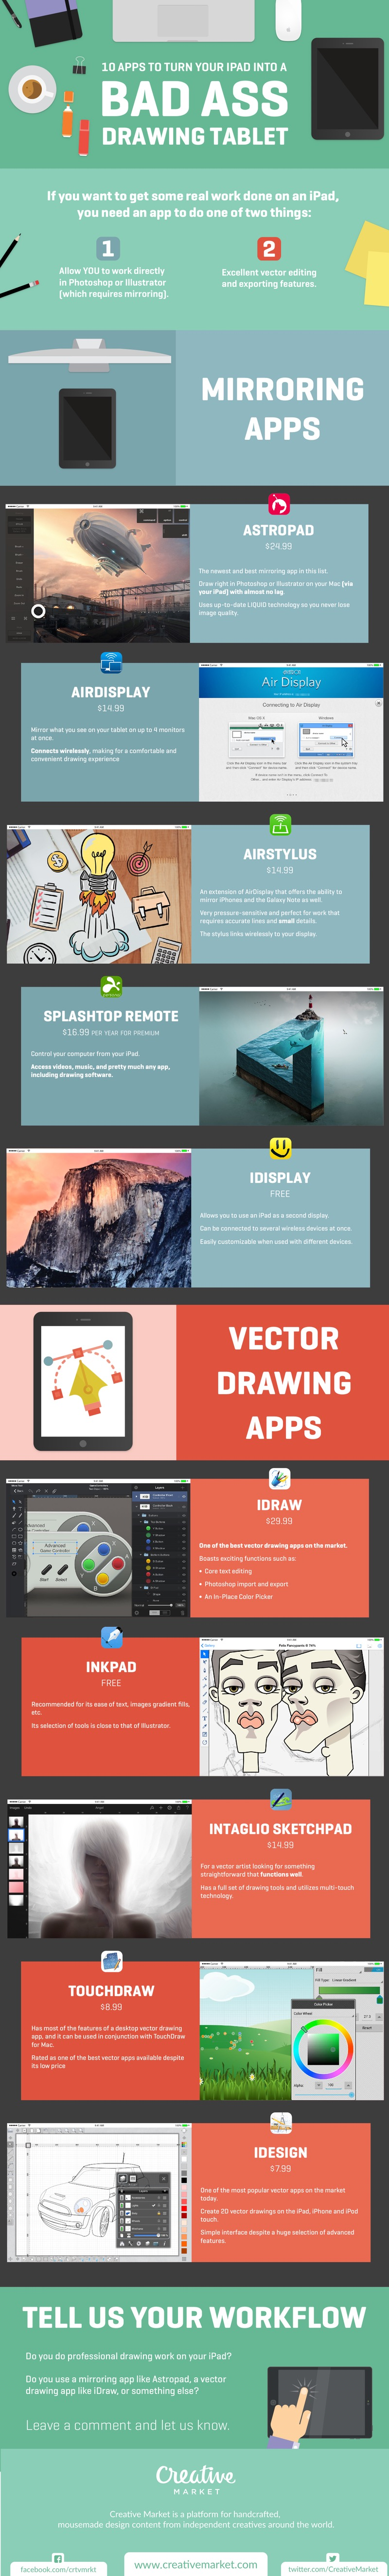 Apps That Allow Effective Drawings On iPads - Infographic